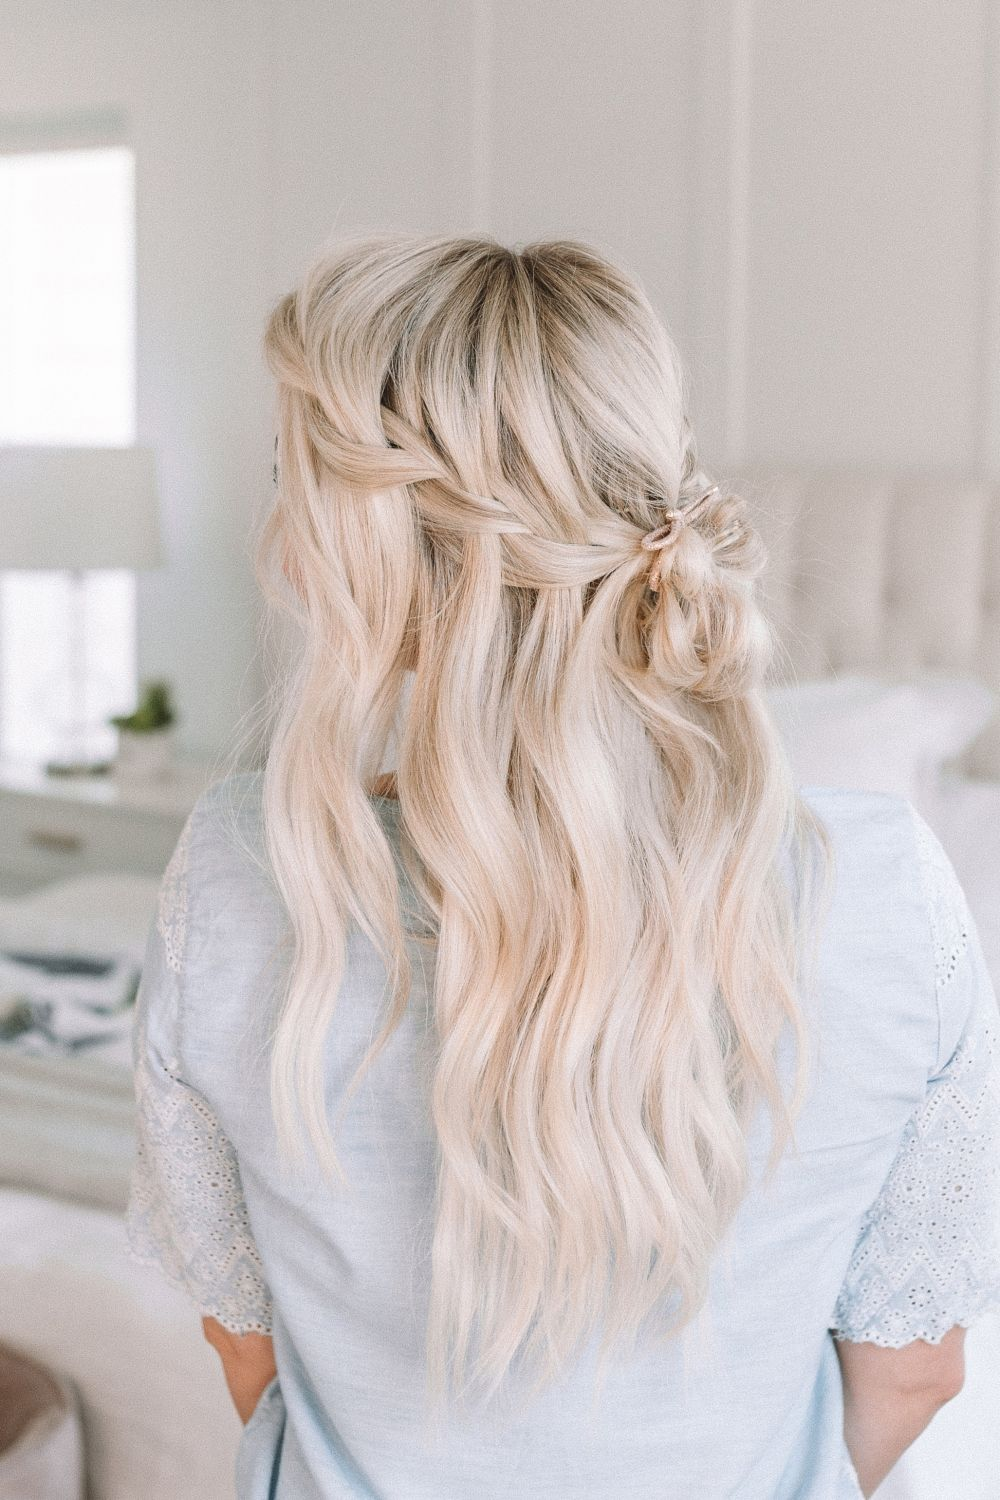 I'm super pumped for this week because it's alllllll about the waterfall braid. Honestly I haven't done a waterfall braid in ages so filming these videos was so fun for me! #twistmepretty #waterfallbraid #braidtips #howtobraid #hairstyle #hairtips #learnhowtobraid